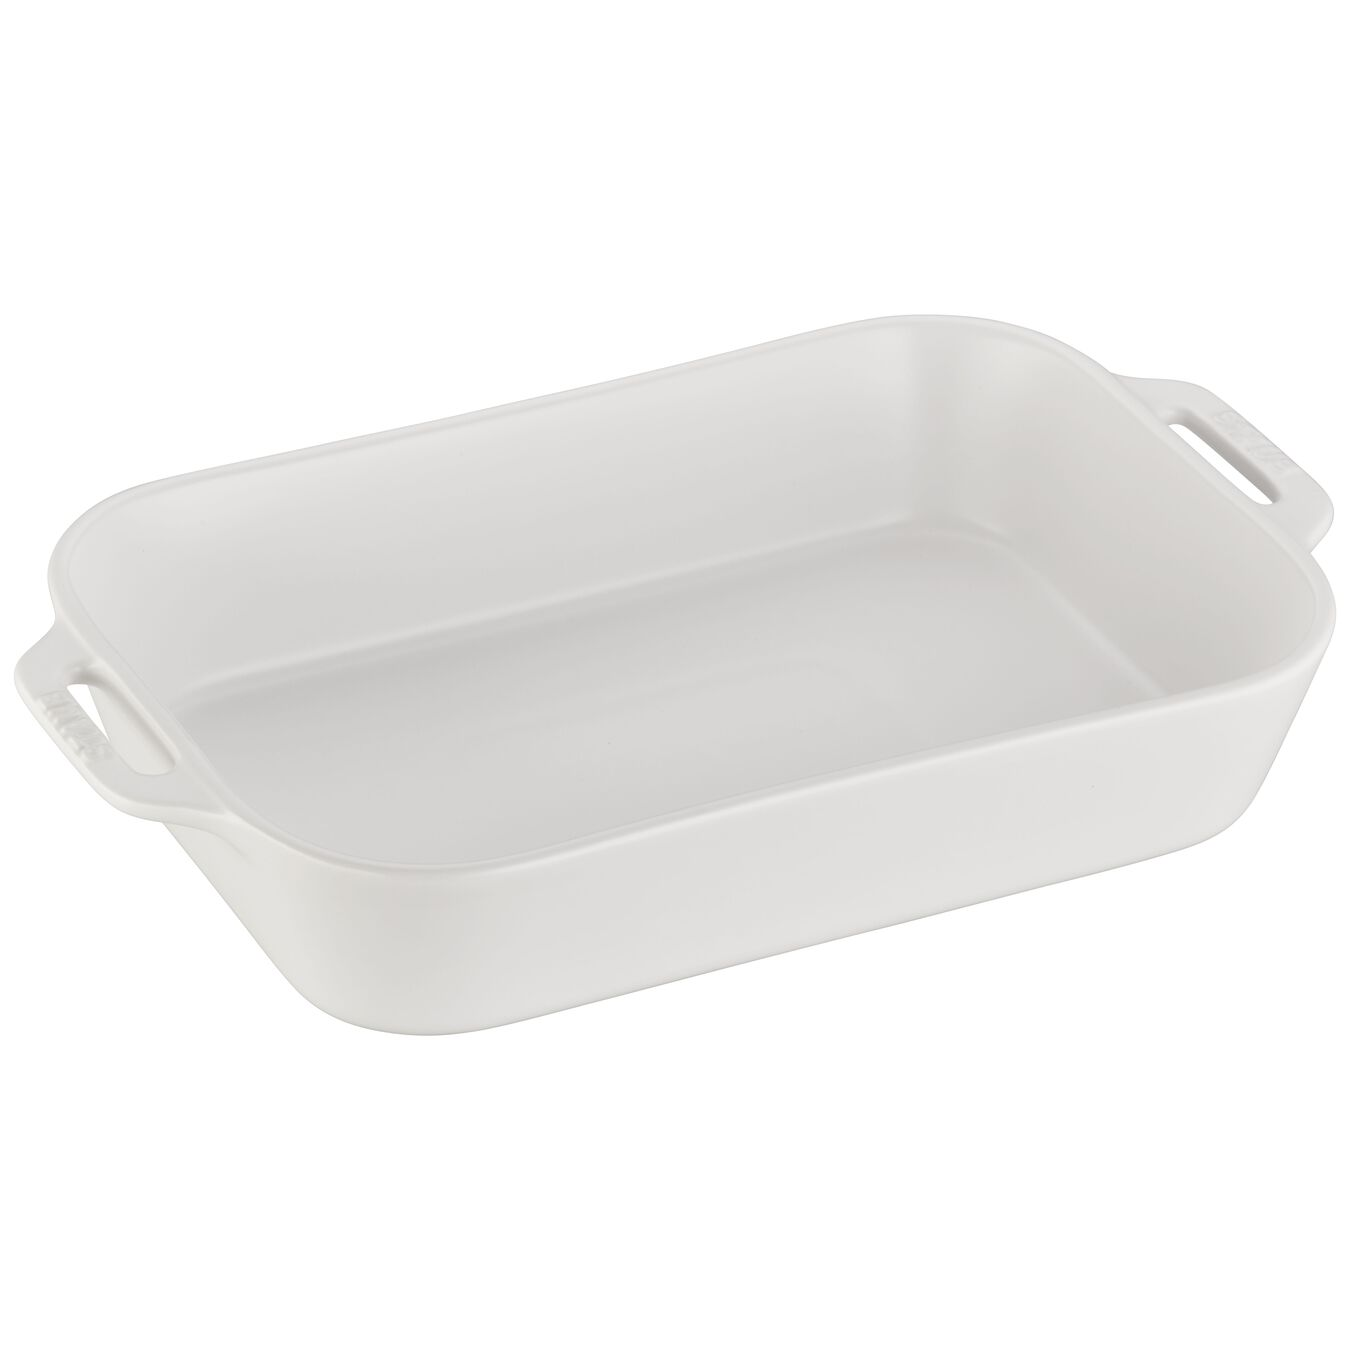 13-inch x 9-inch Rectangular Baking Dish - Matte White,,large 1